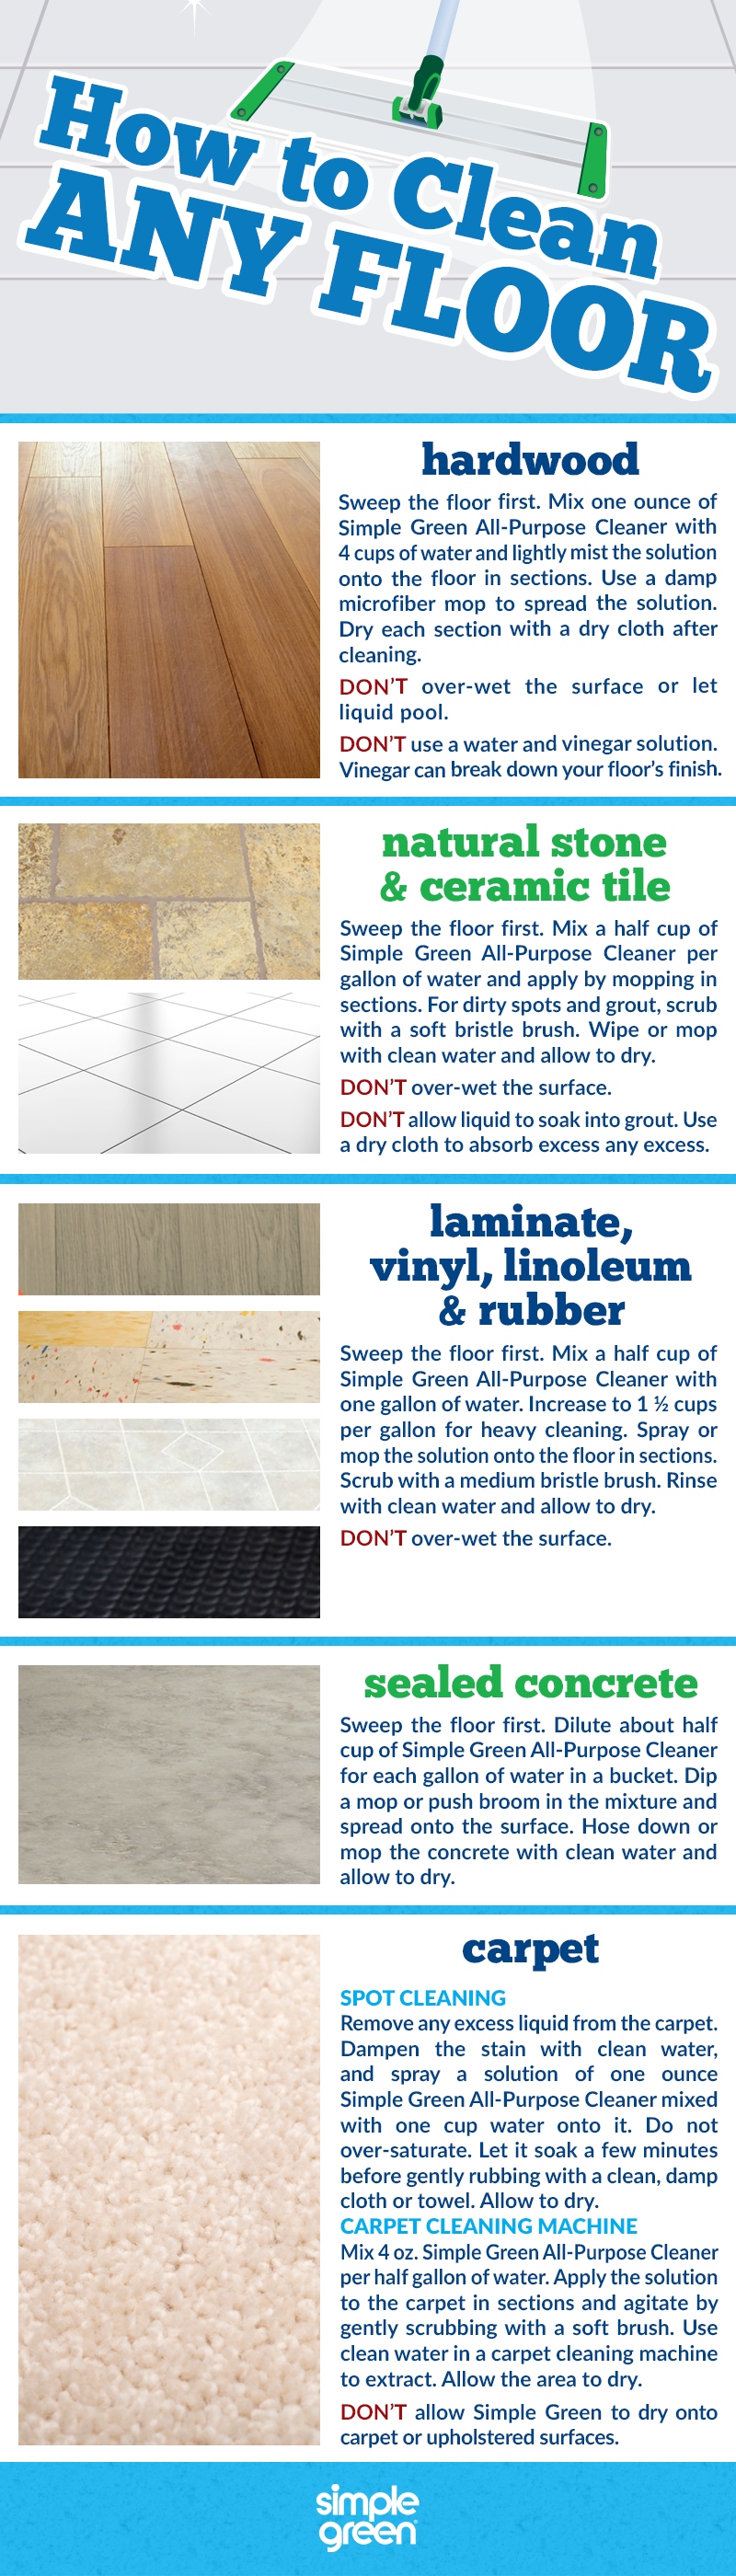 Clean hardwood stone tile concrete or even linoleum floors and